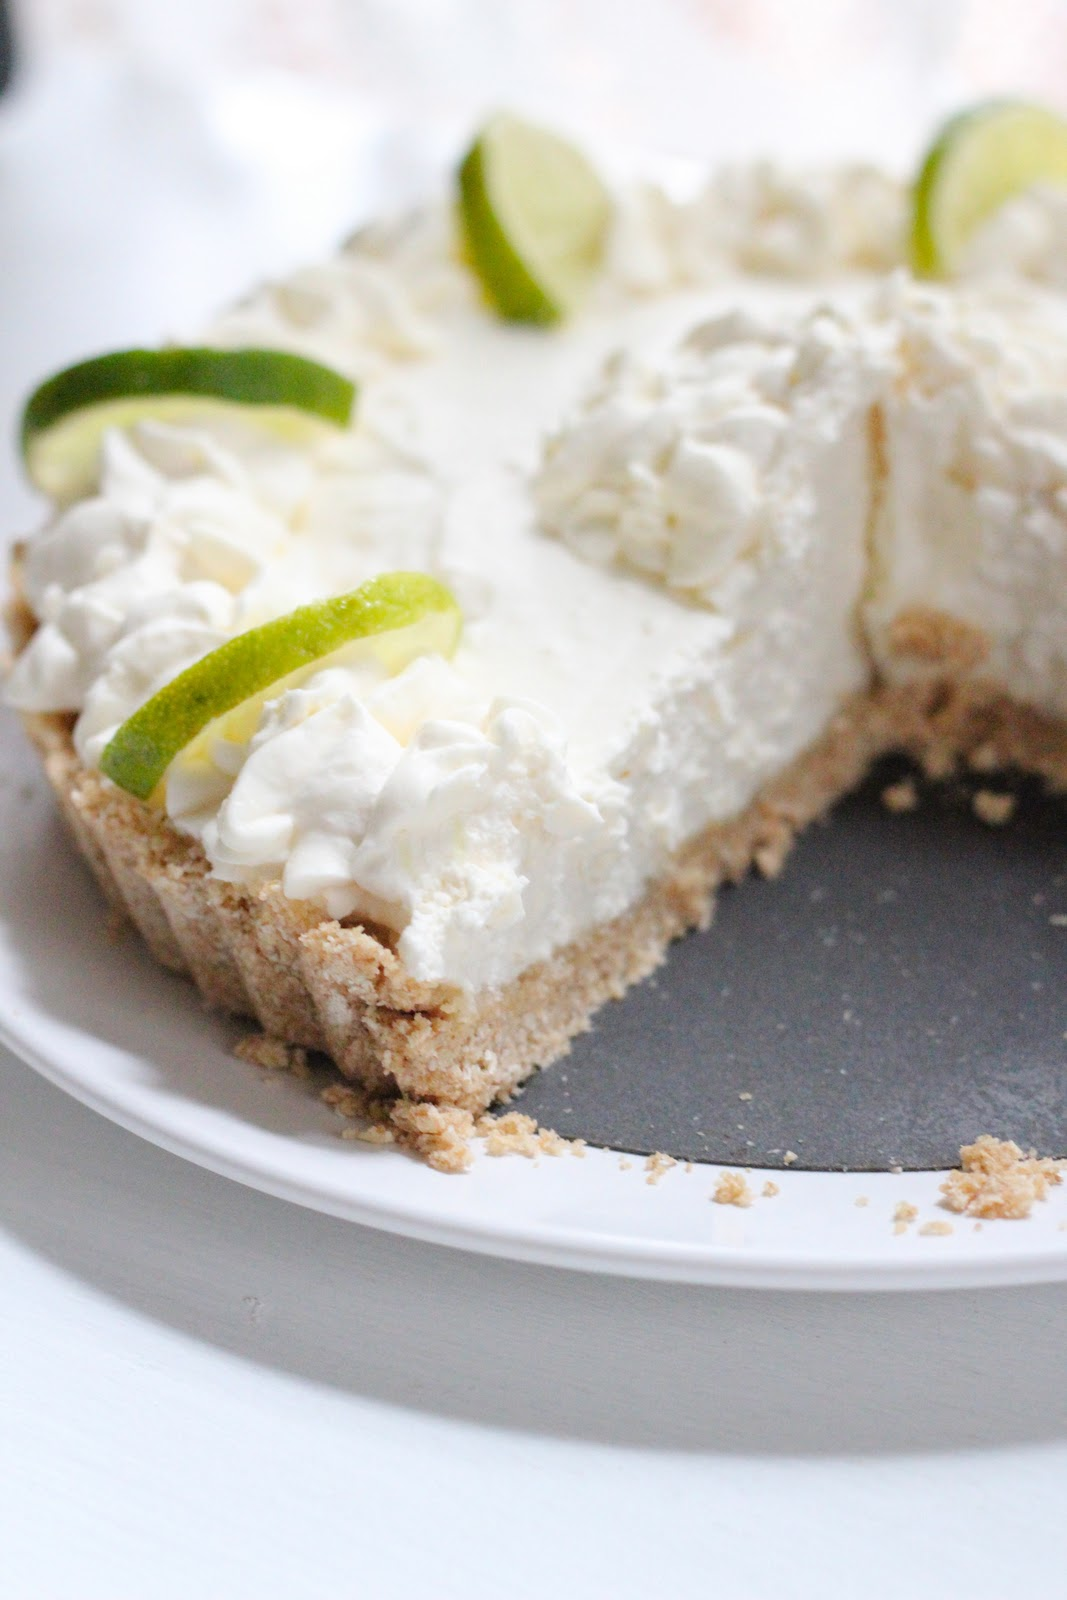 No Bake Key Lime Pie Eat Good 4 Life